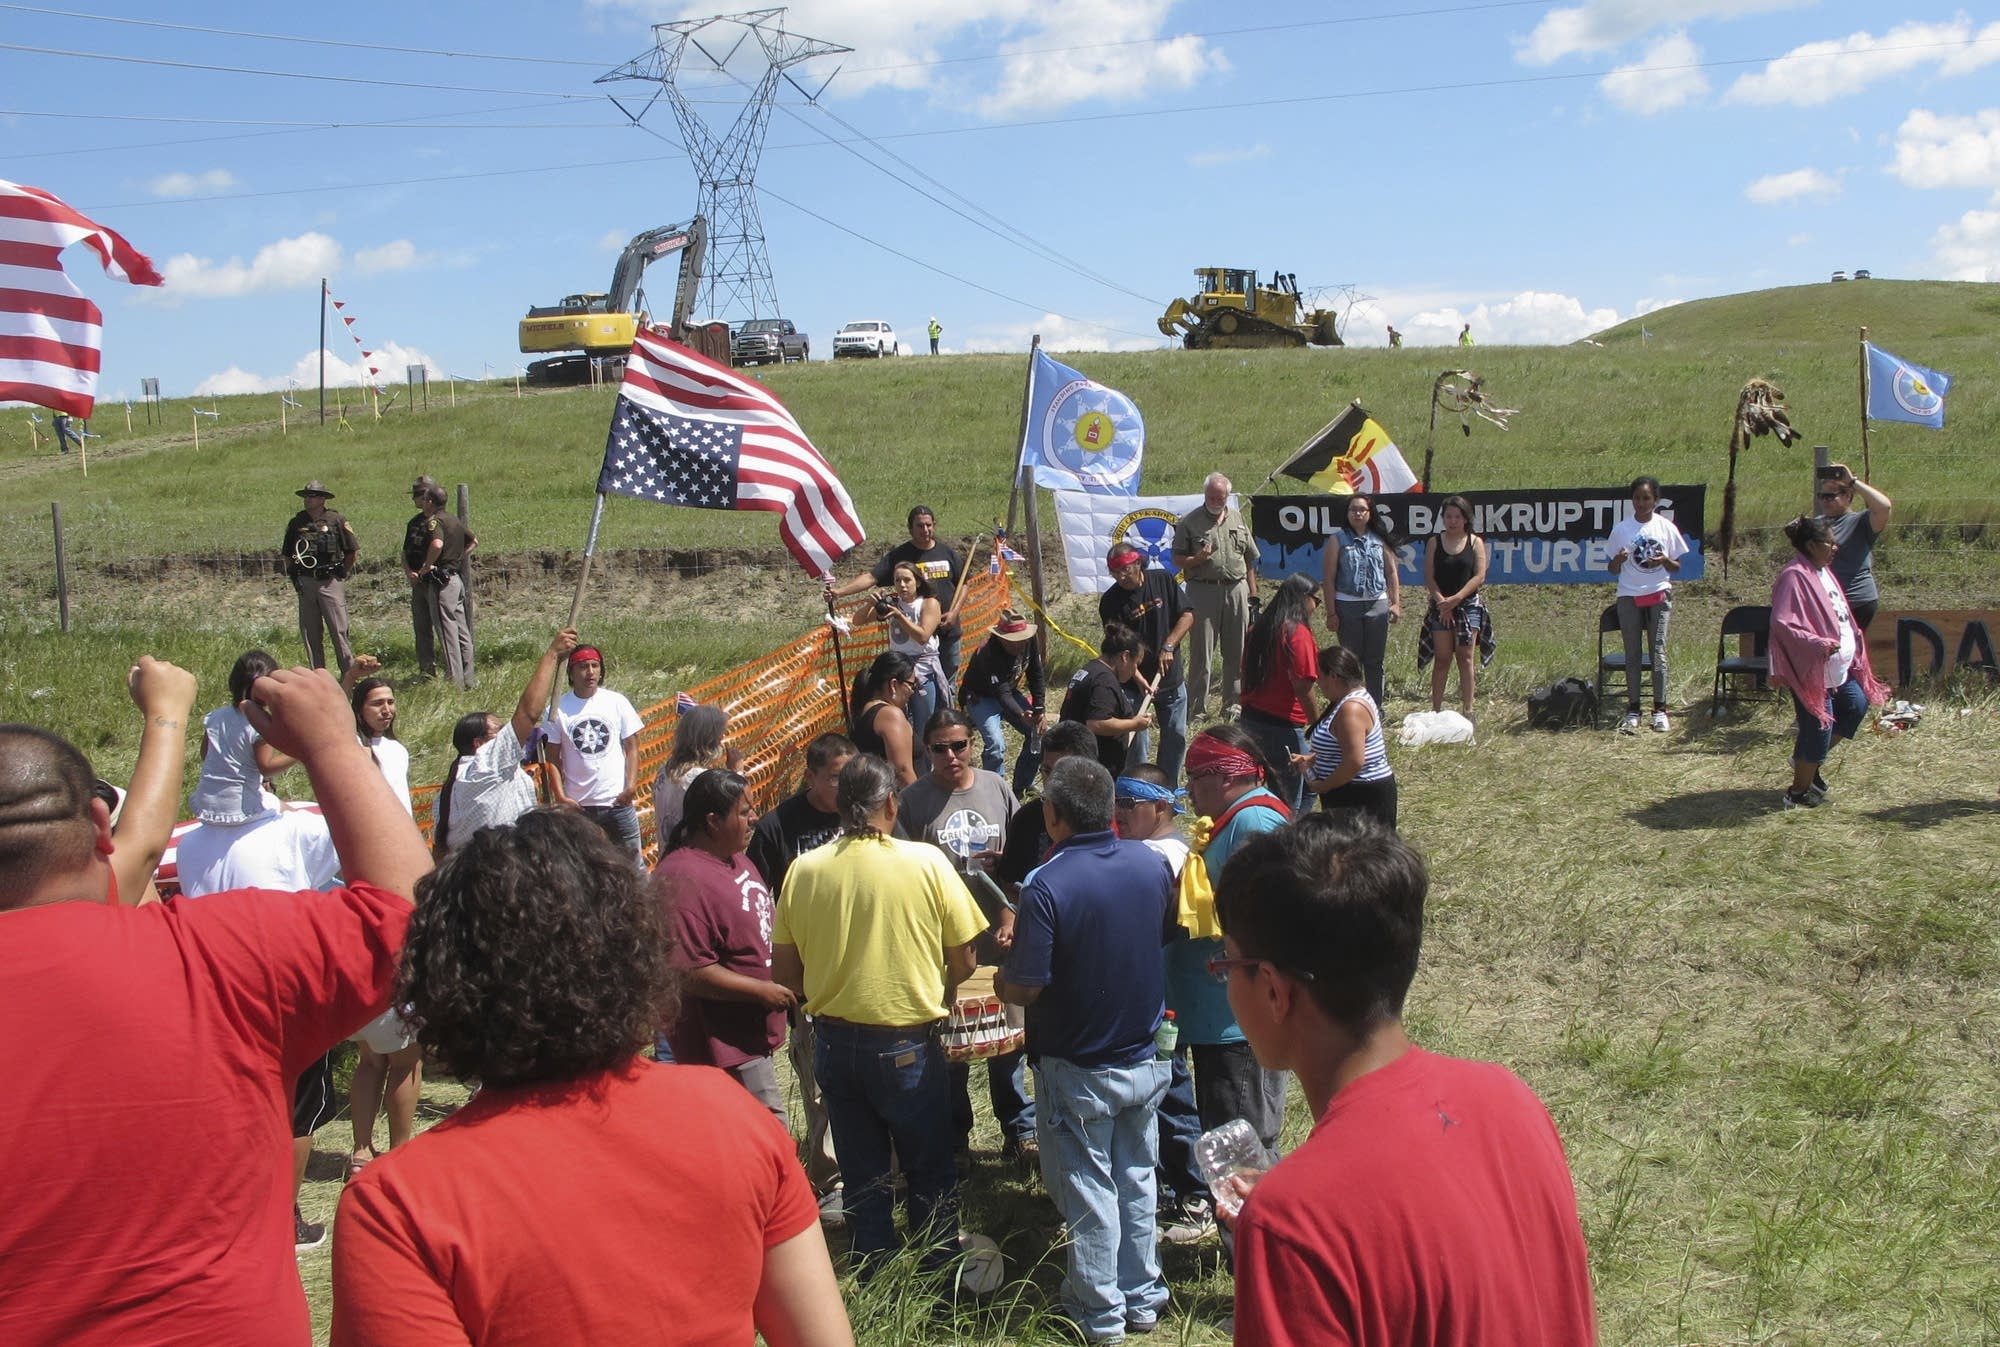 Native Americans protest Dakota Access pipeline